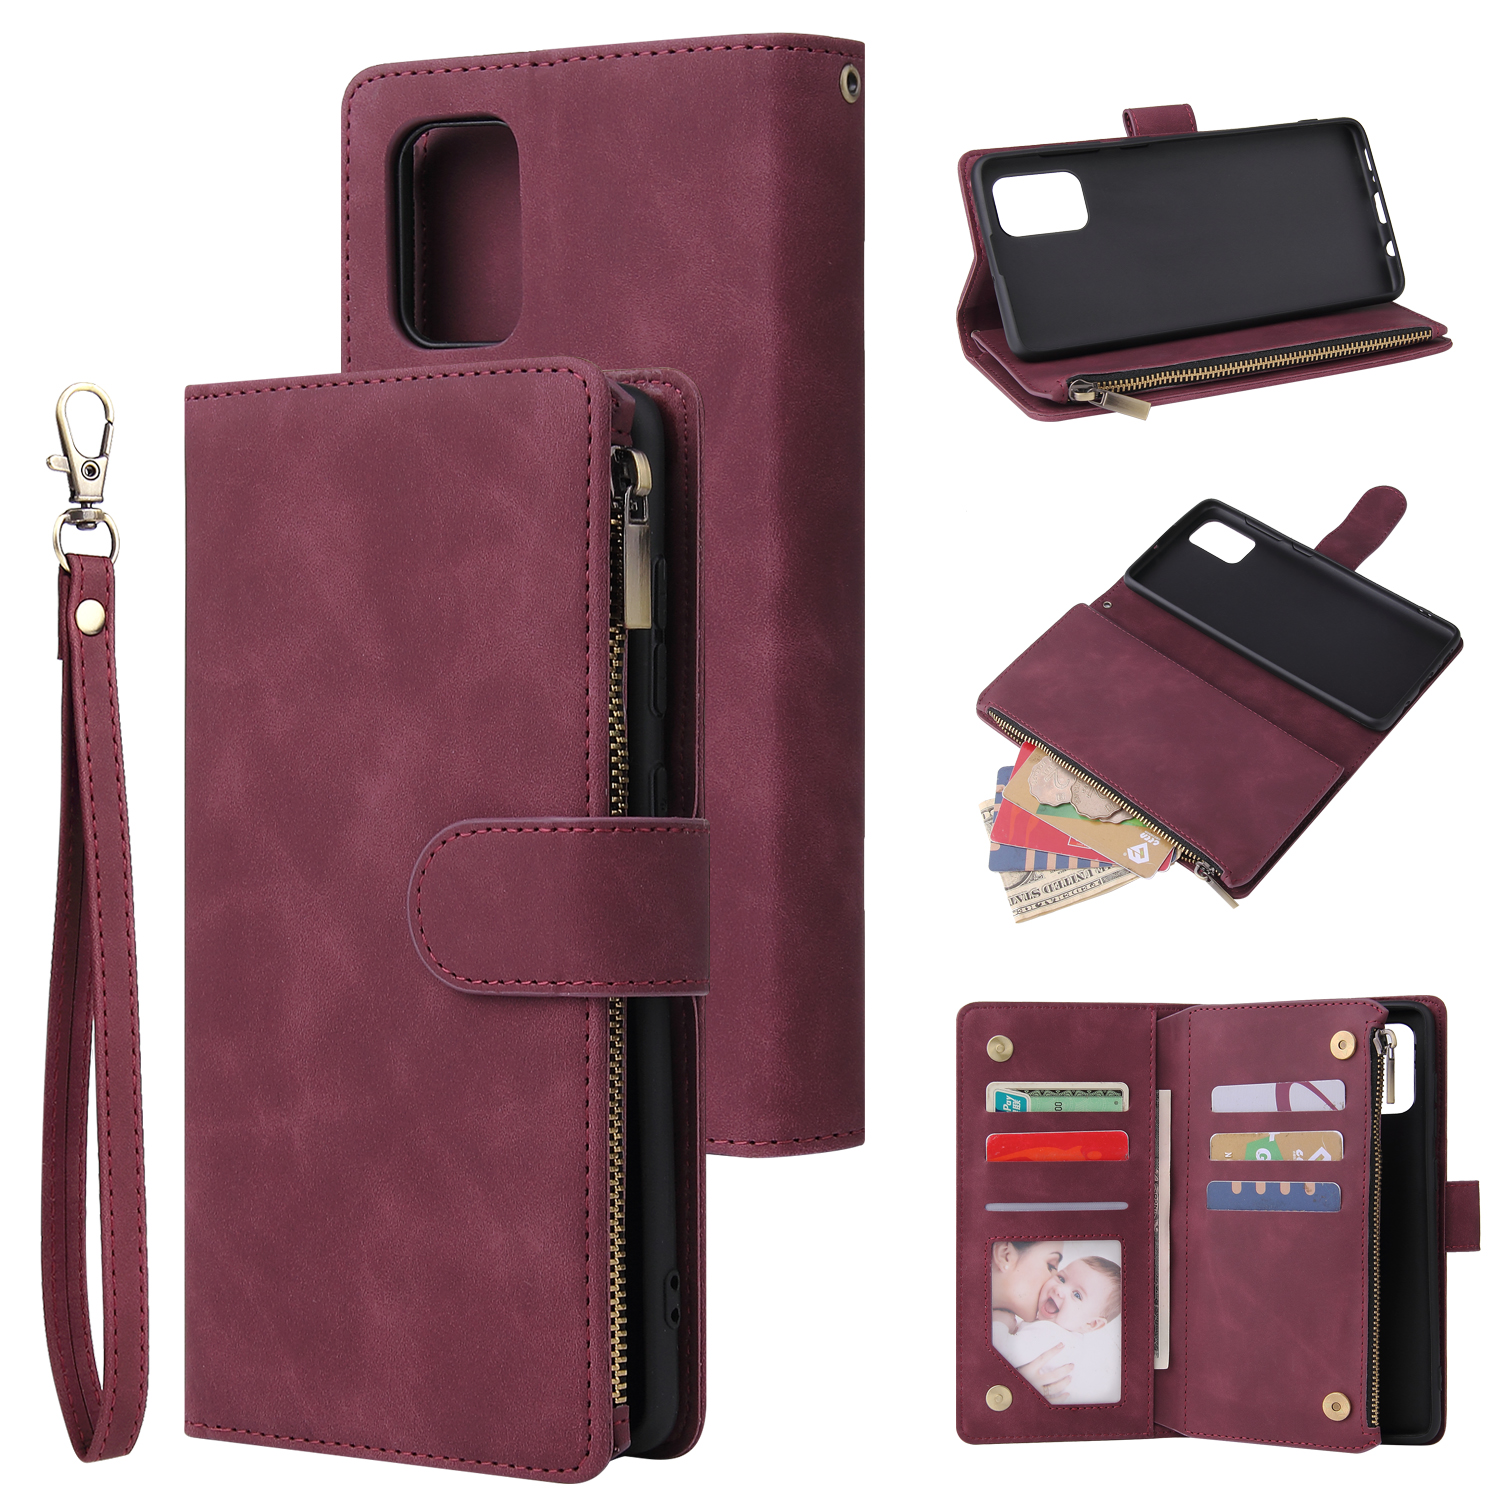 For Samsung A71 Case Smartphone Shell Precise Cutouts Zipper Closure Wallet Design Overall Protection Phone Cover  Wine red